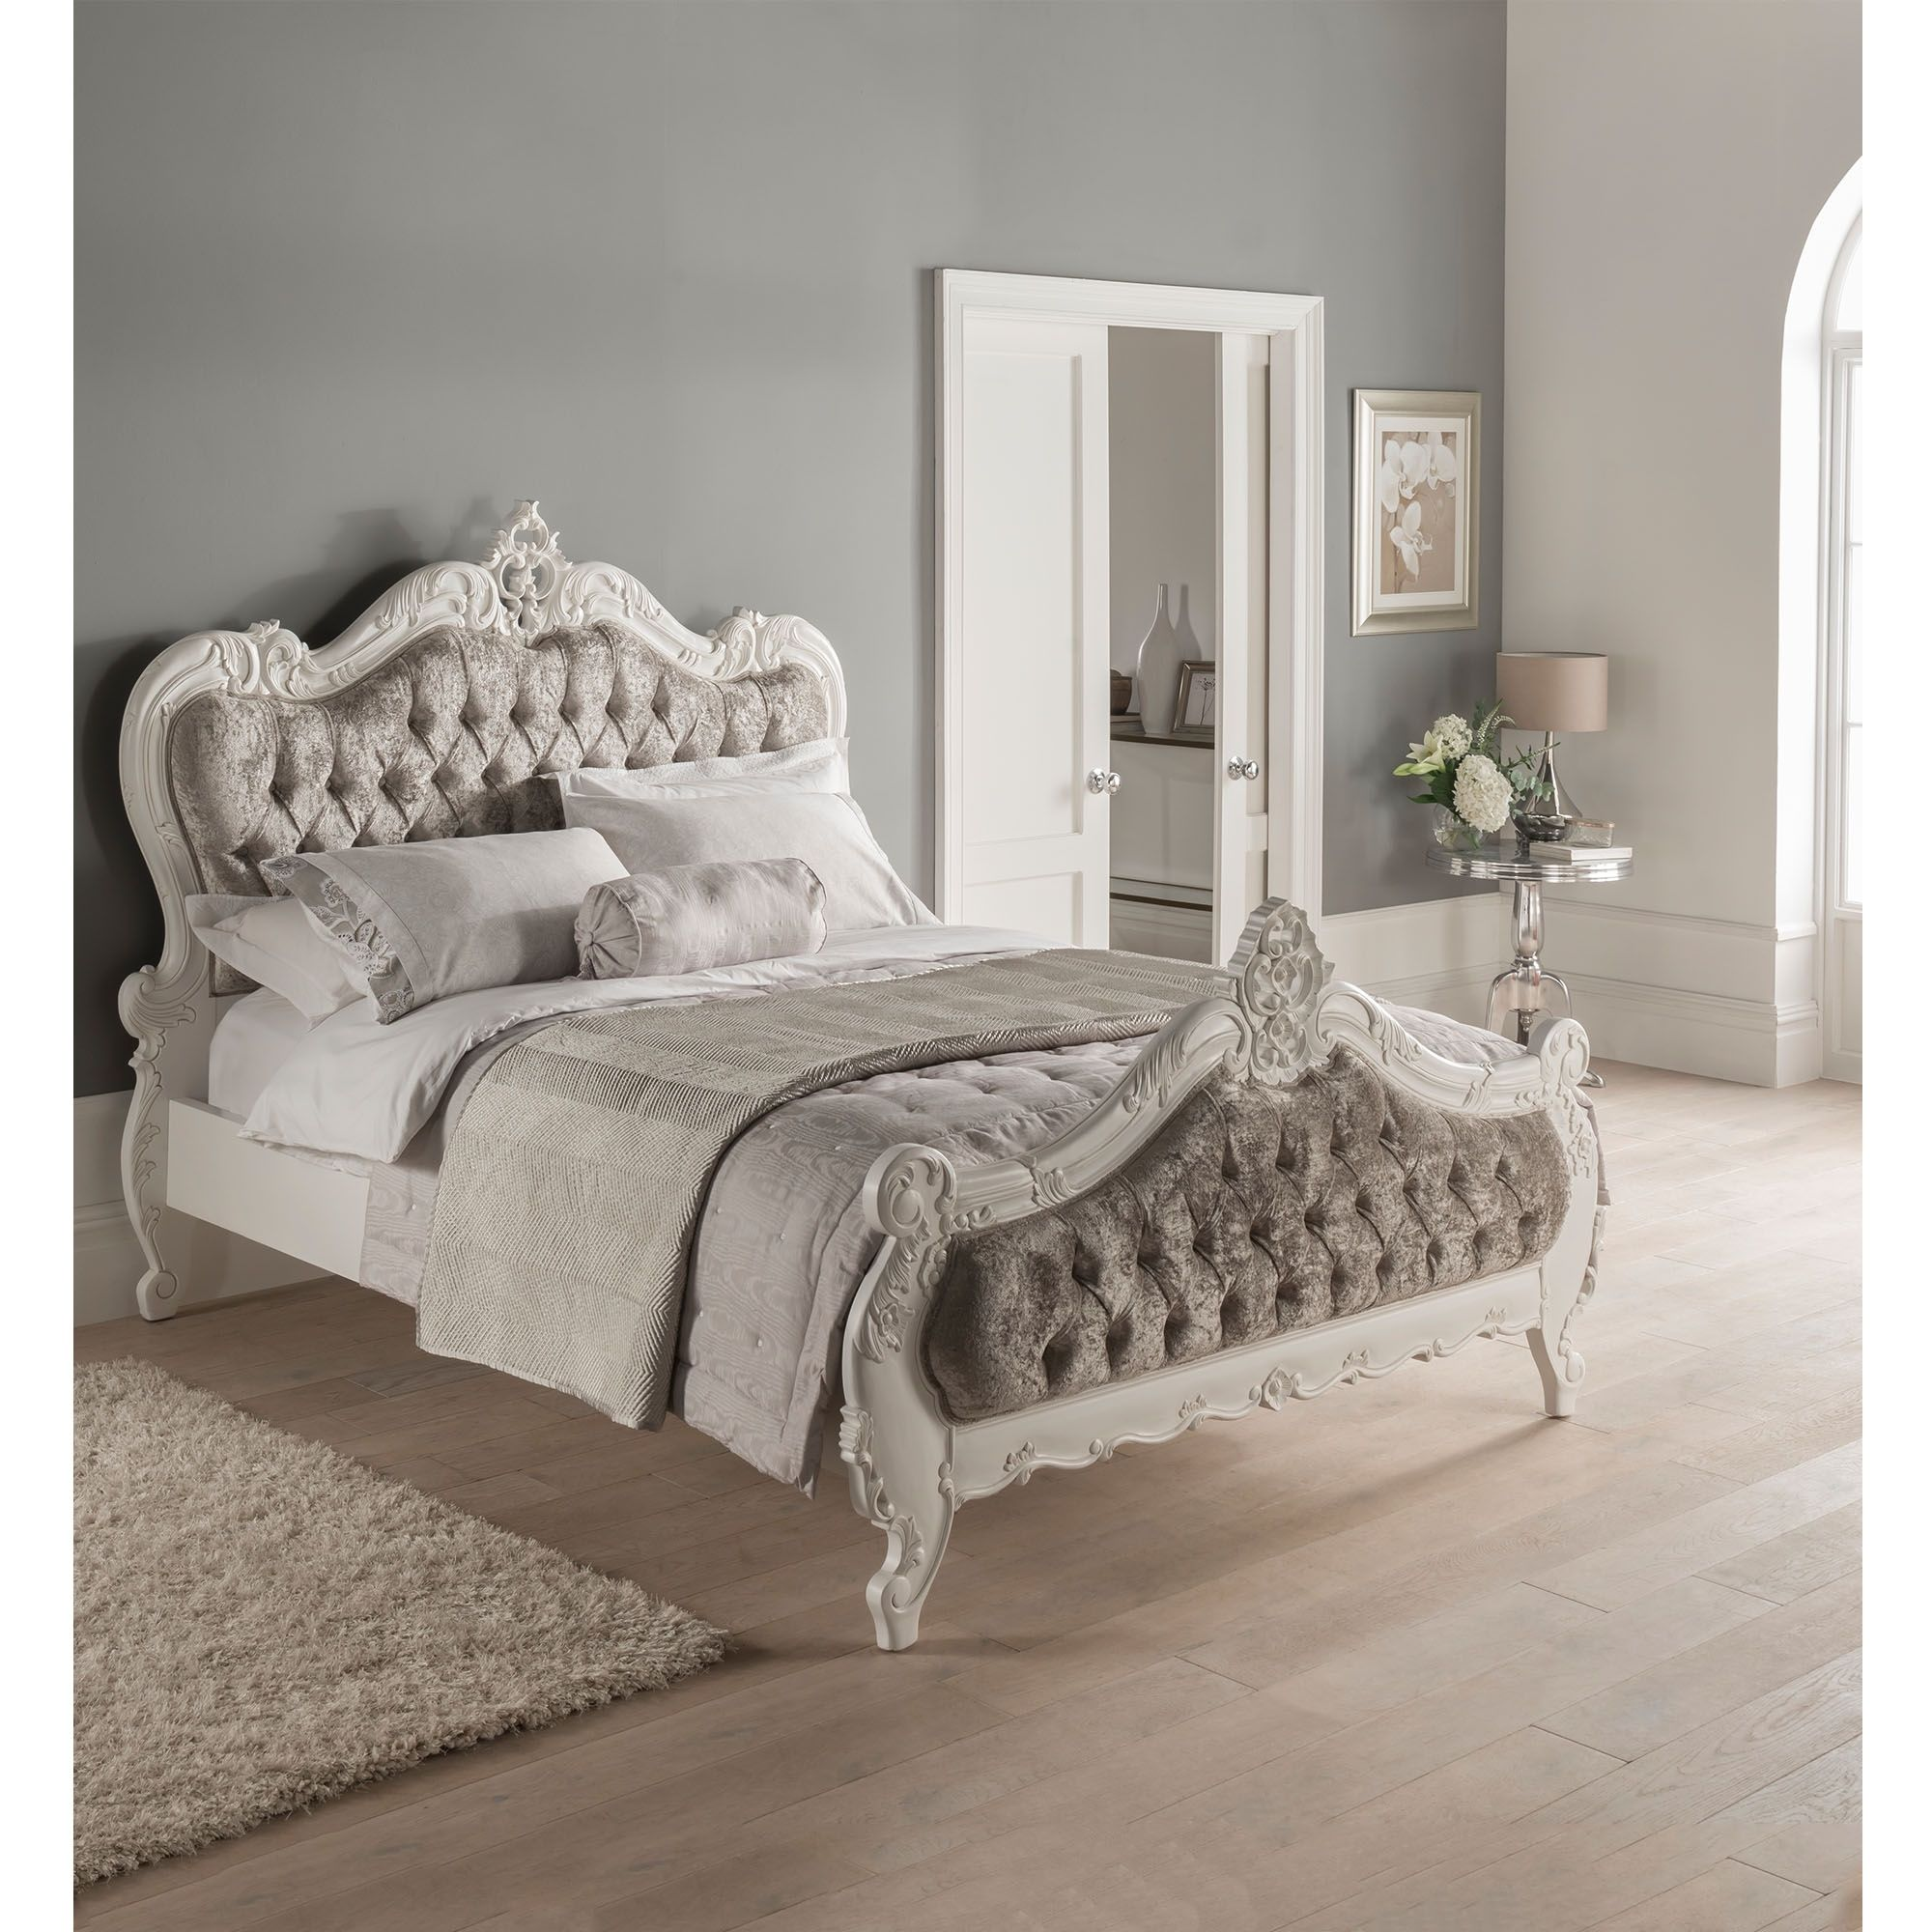 Crushed Velvet Antique French Style Bed | Bedroom ideas in ...